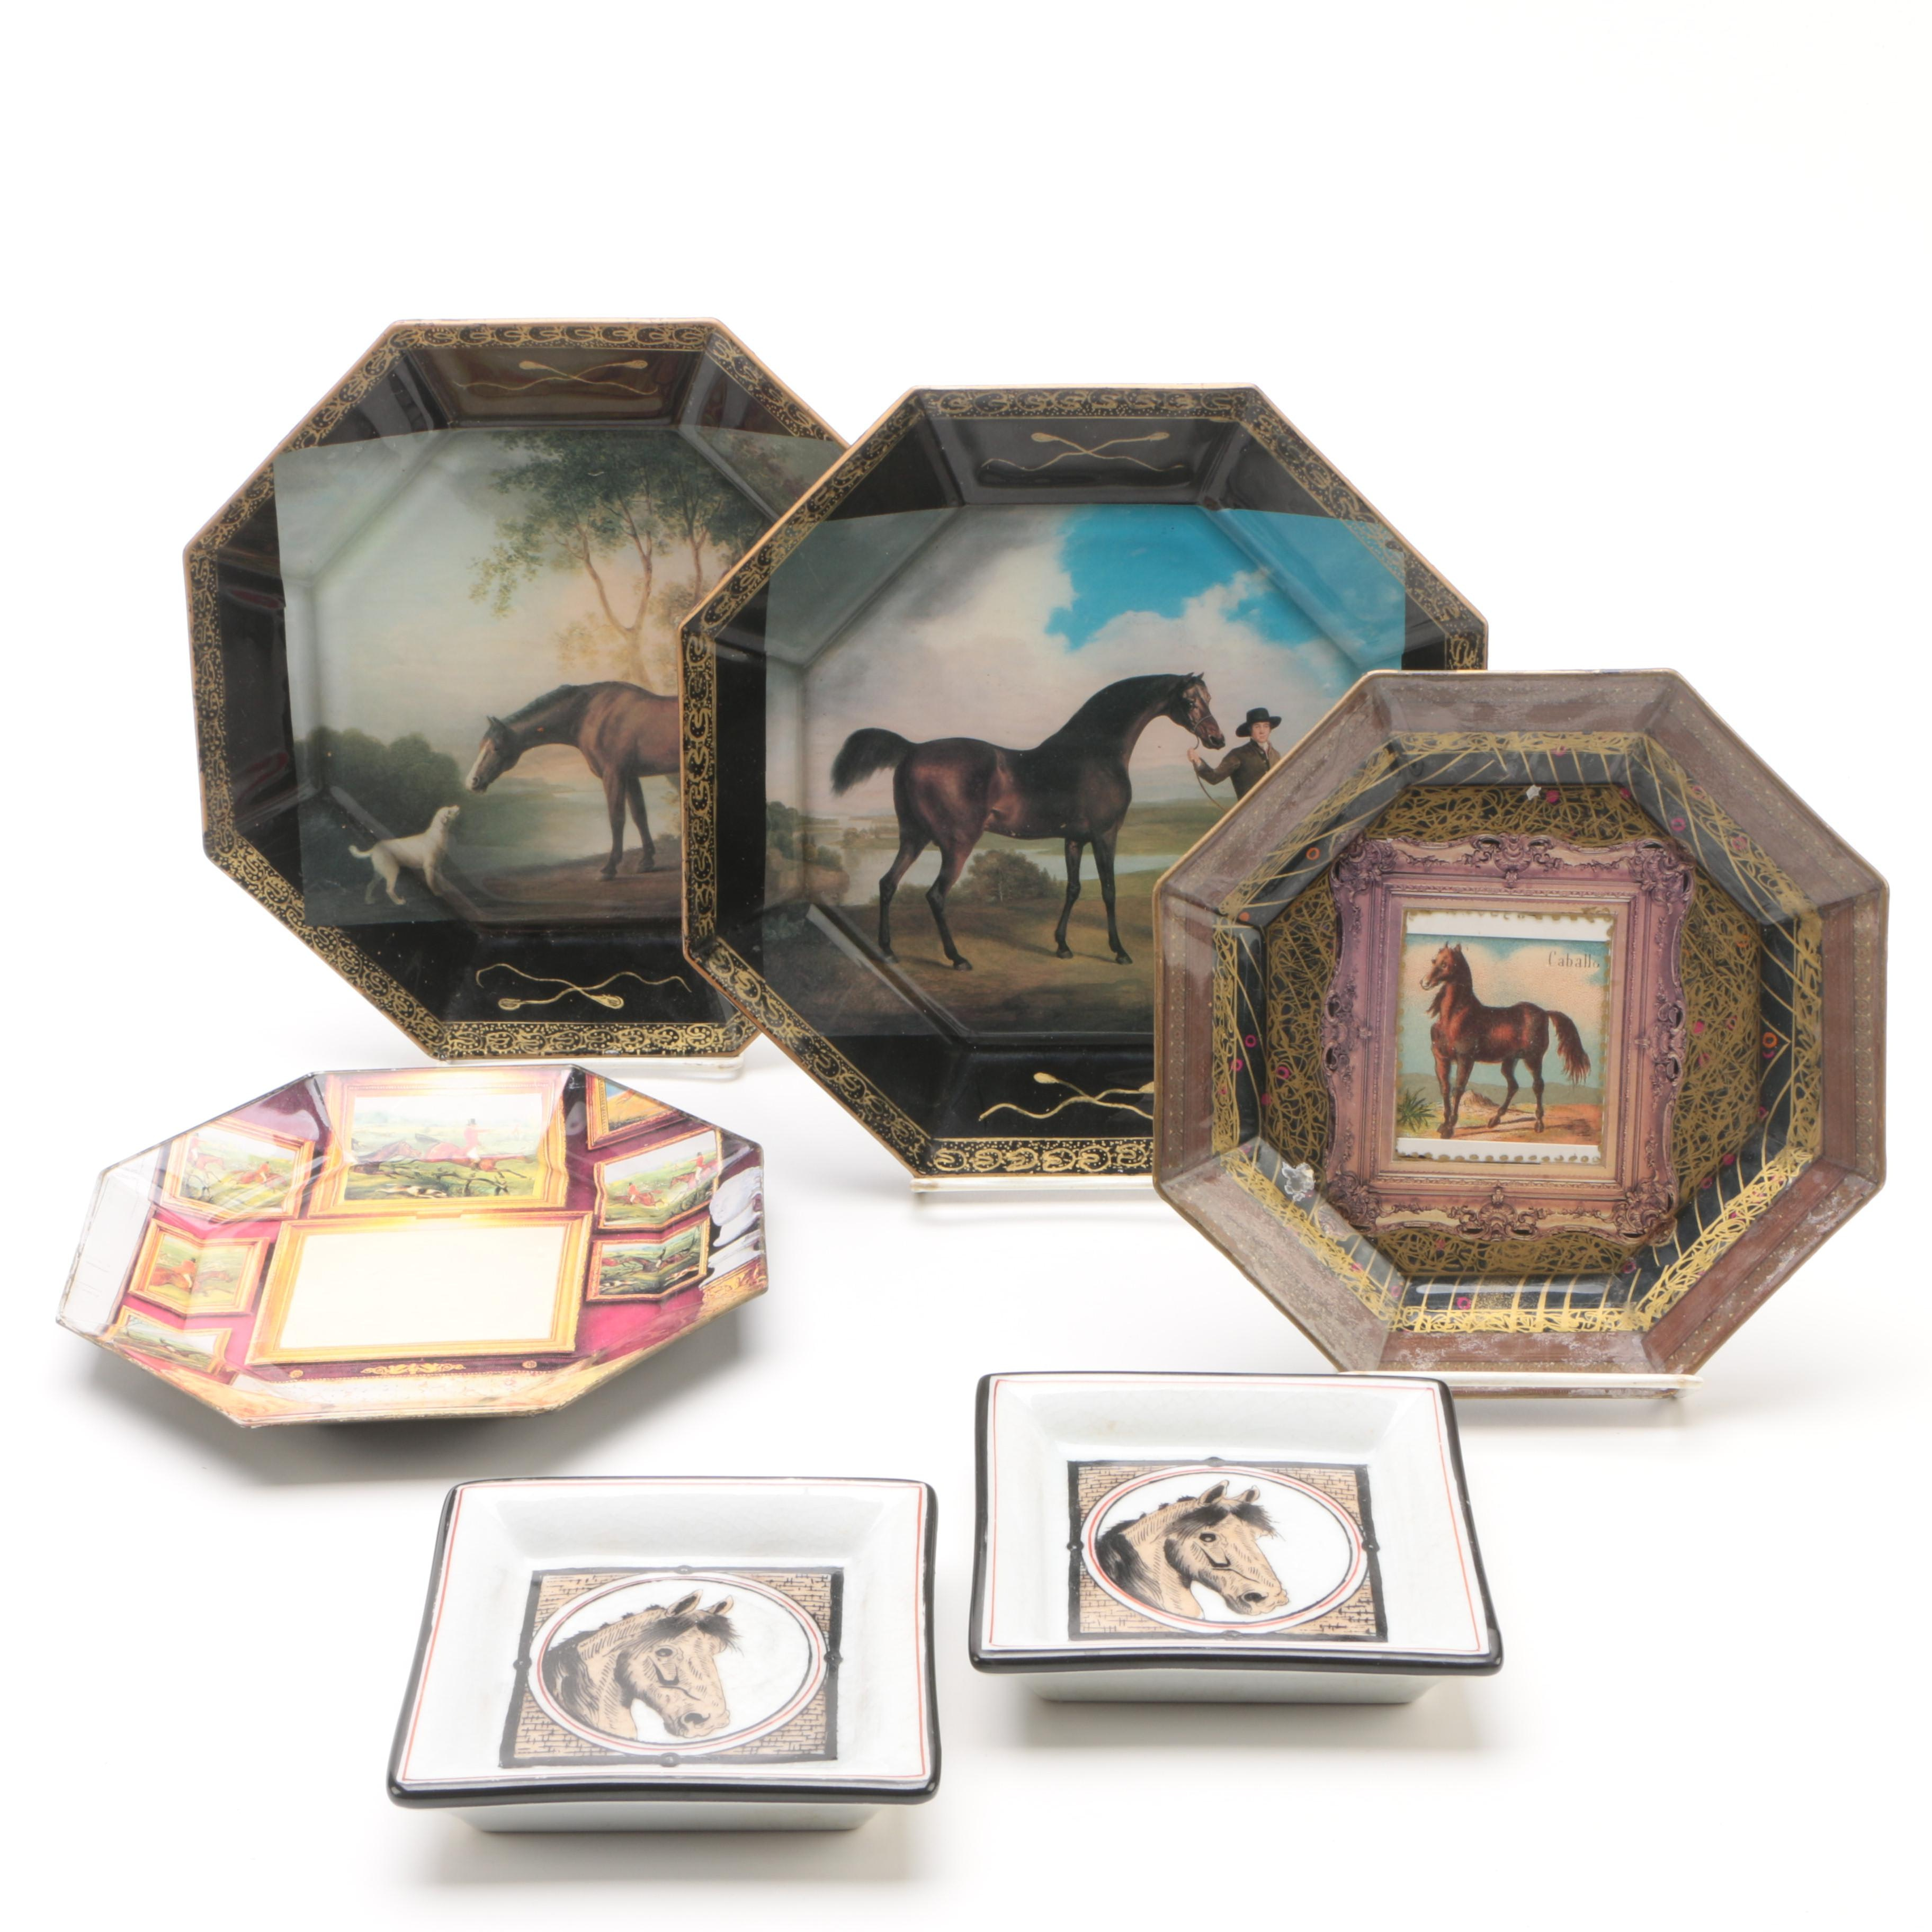 Signed Jered Holmes Decoupage Equestrian Plate with Other Plates and Dishes